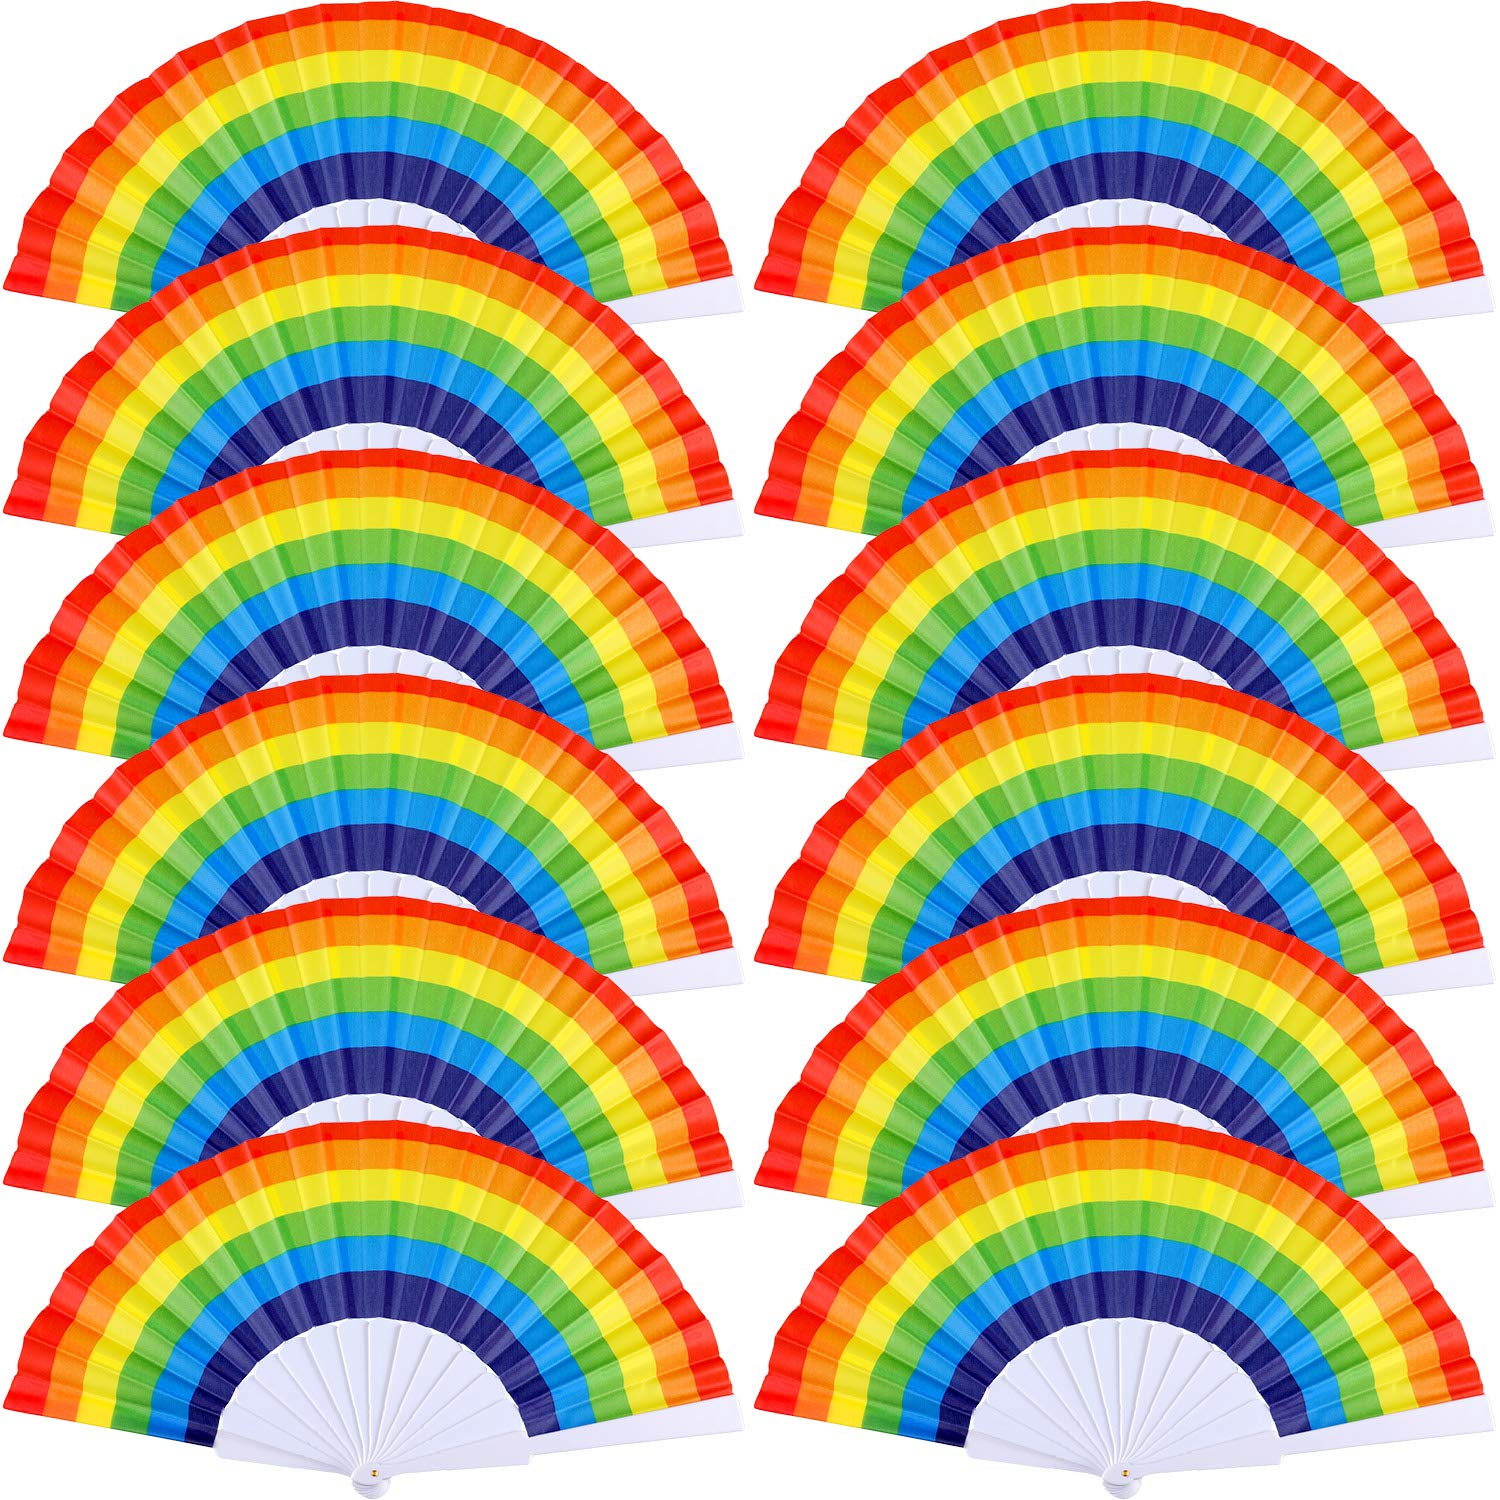 Yaomiao 12 Pieces Rainbow Fans Rainbow Folding Fans Colorful Hand Held Fan Summer Accessory for Rainbow Party Decoration (Horizontal Stripes)